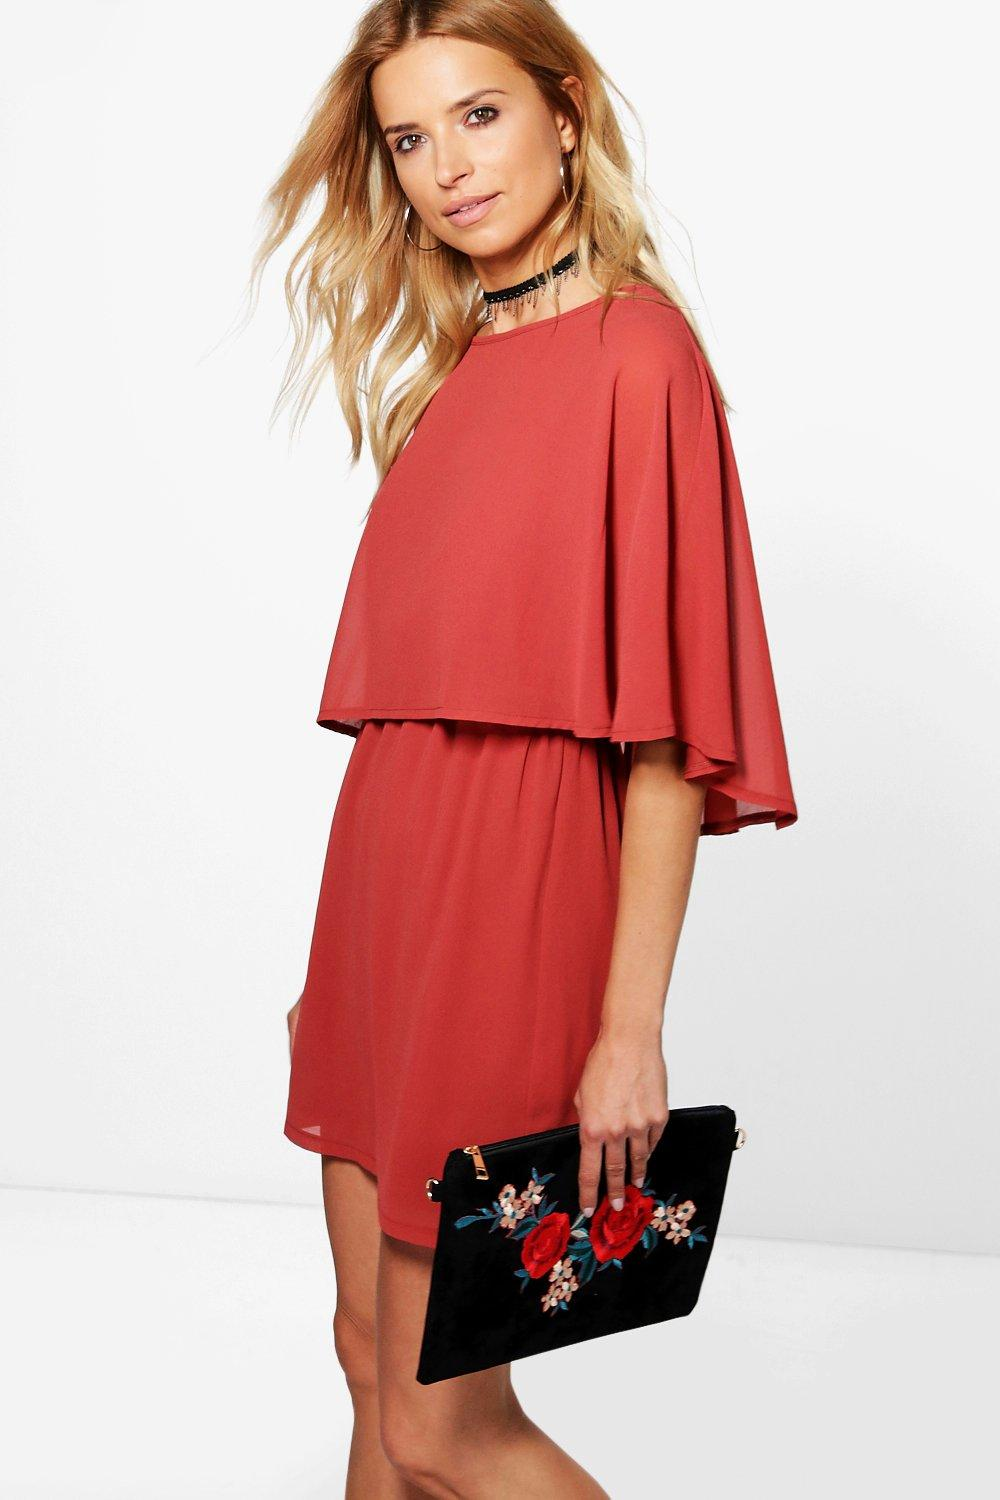 Astley Chiffon Cape Skater Dress